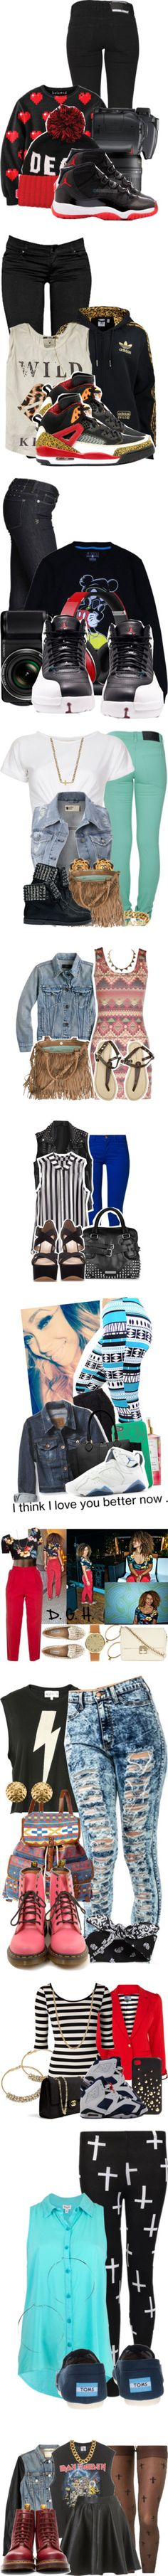 """Sooooo dOpE , it cant be TOUCHED ... ♥♥♥"" by pretty-and-mindless ❤ liked on Polyvore"